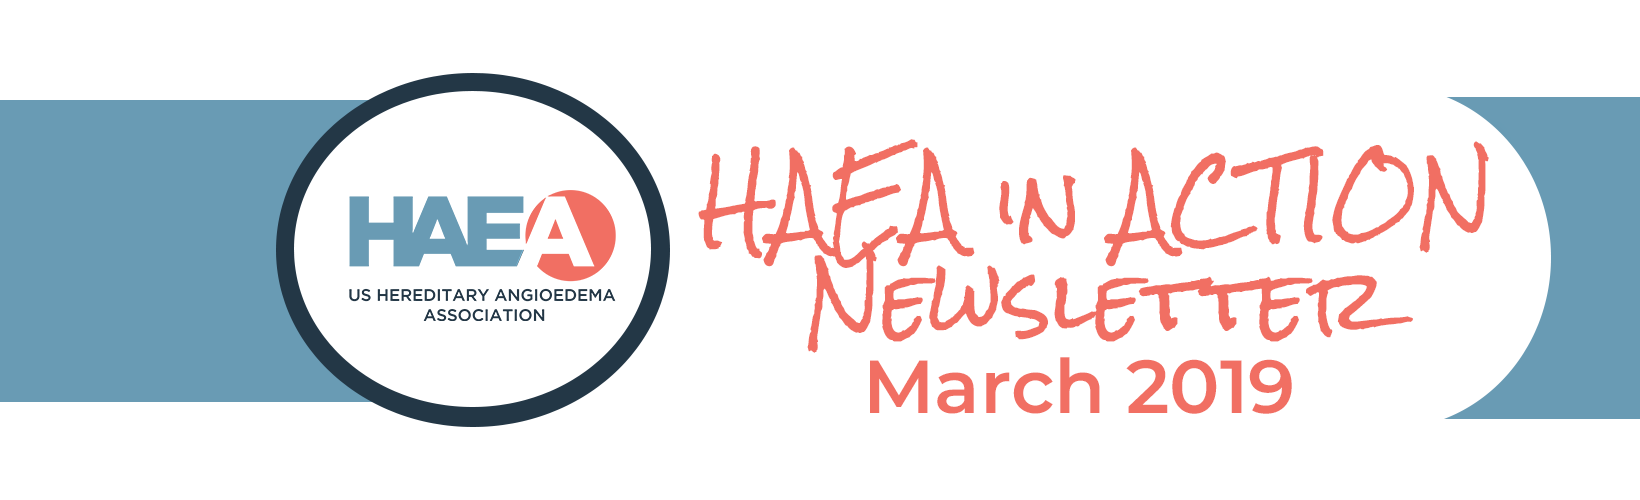 HAEA in Action March 2019 Newsletter